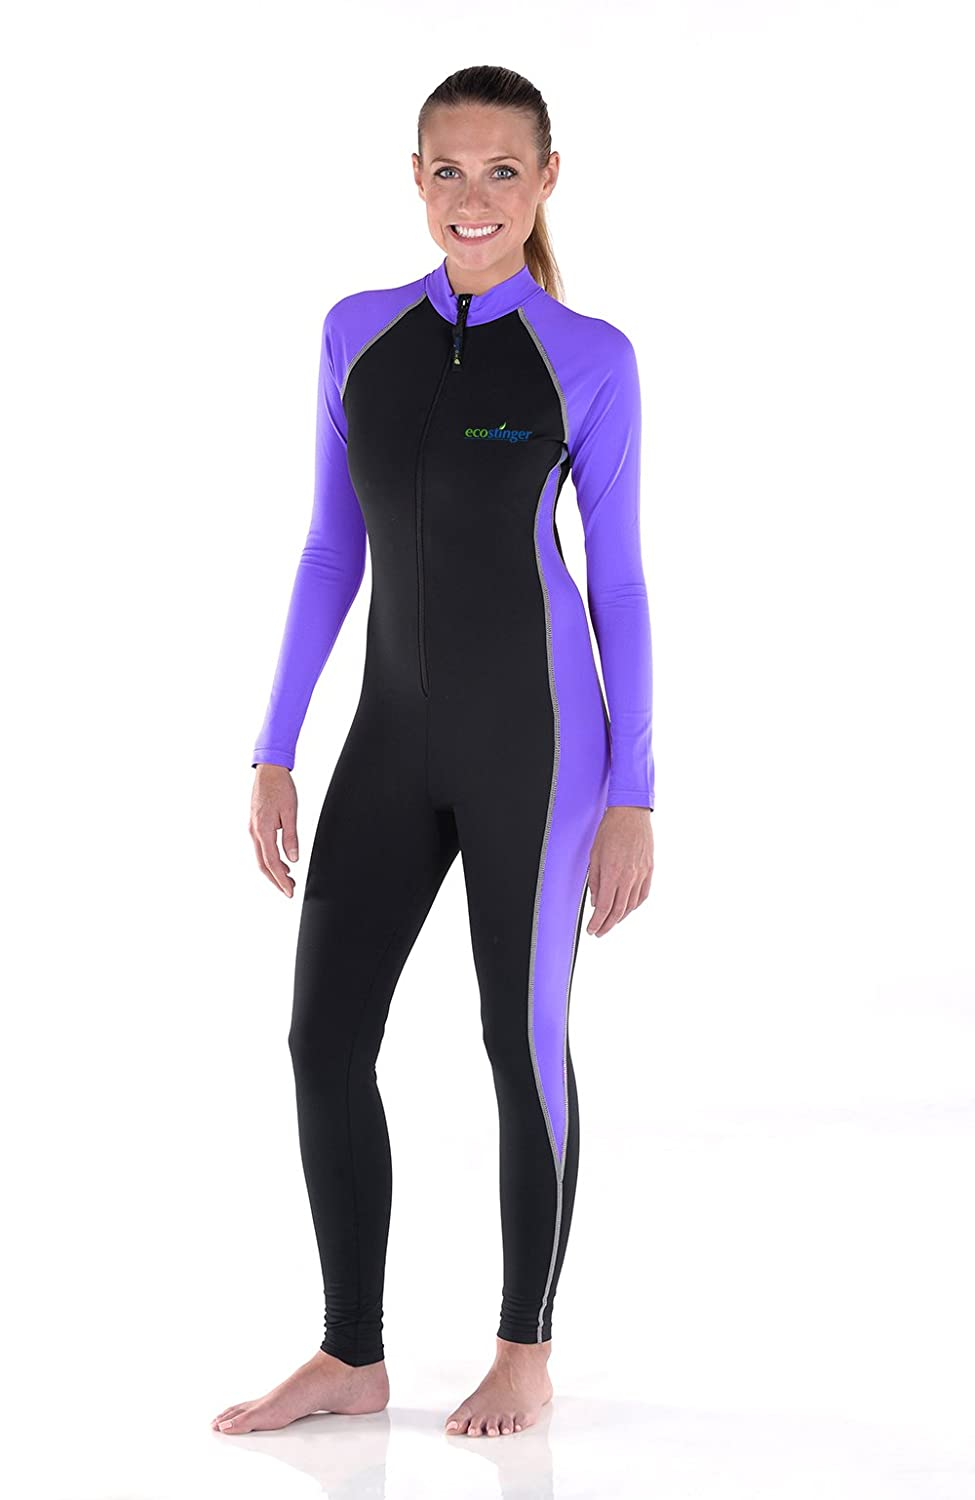 Women Full Body Swimsuit Sun Guard Stinger Suit Dive Skin UPF50+ Black Lavender A102-LAV